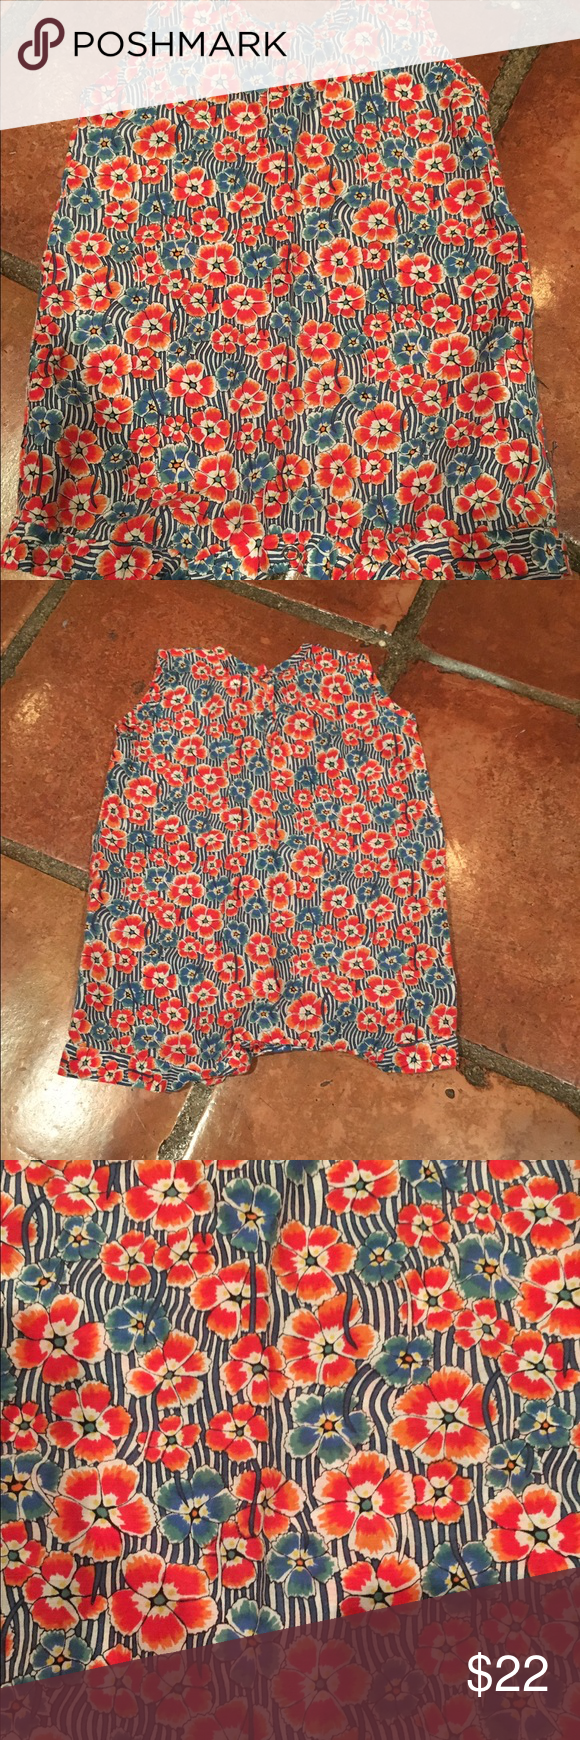 Makie Striped Floral Romper The cutest lightweight romper!!! Silk/cotton blend, very soft with no signs of wear. Tag reads 3 mo. Pet and smoke free home. Makie One Pieces Bodysuits